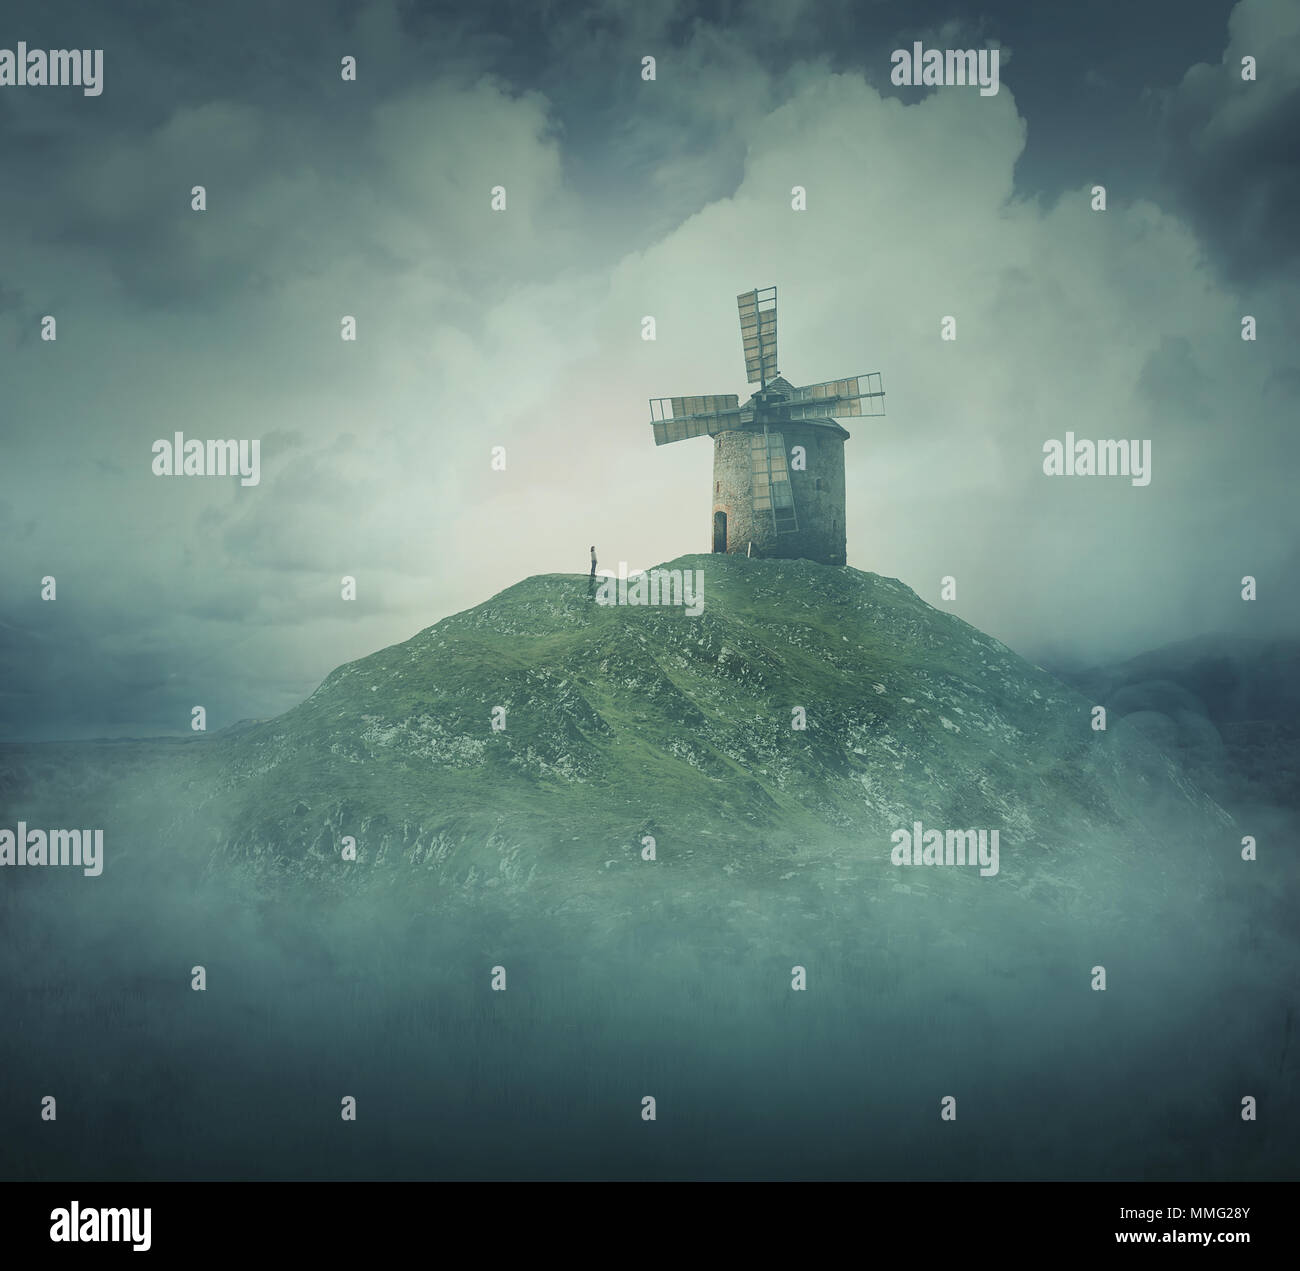 Scenery view as a wander girl silhouette stand in front of an old windmill on the top of a hill surrounded by fog and clouds. Life journey concept, st - Stock Image